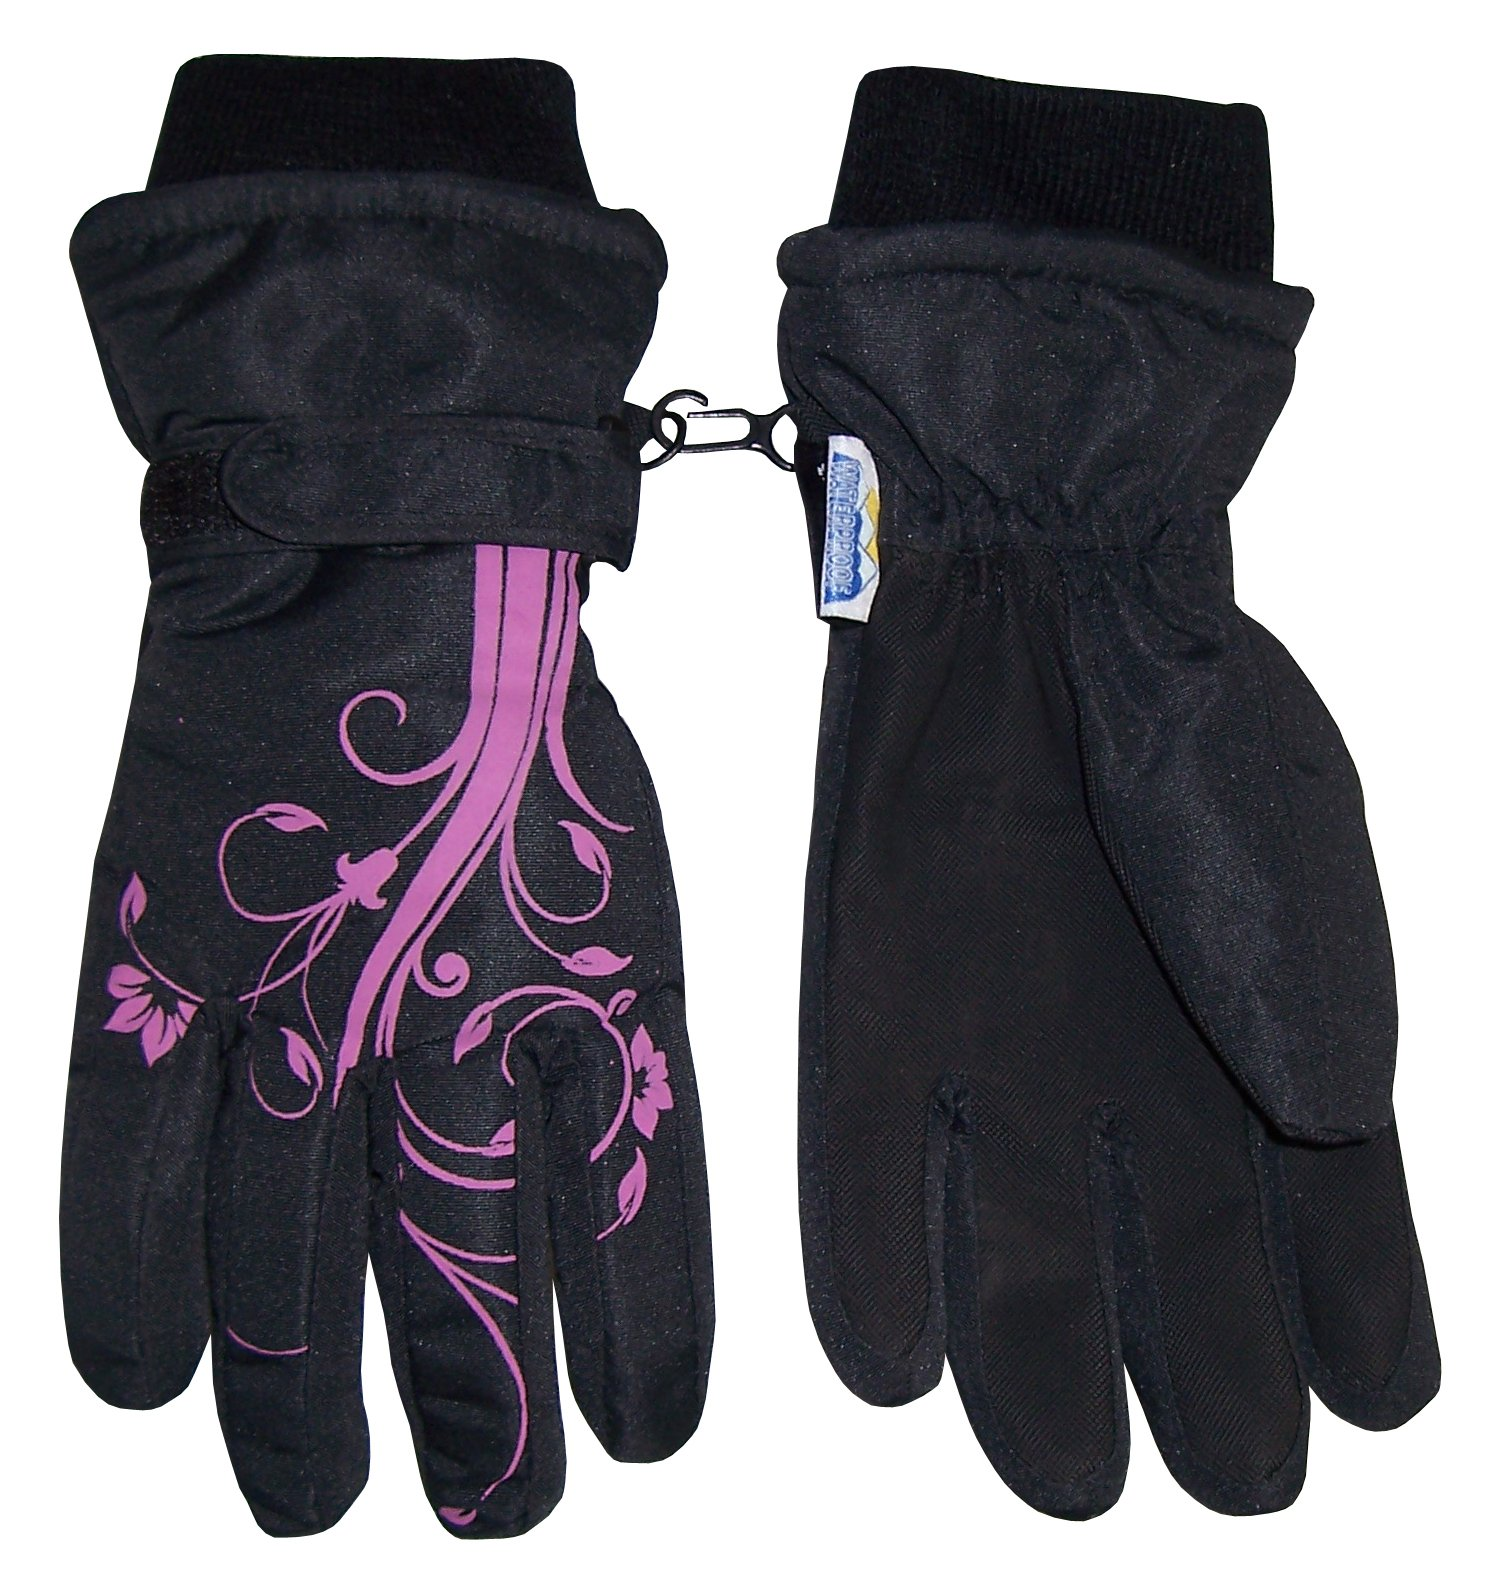 NICE CAPS Girls Thinsulate and Waterproof Winter Gloves with Flower Tattoo Print by Winter Gloves